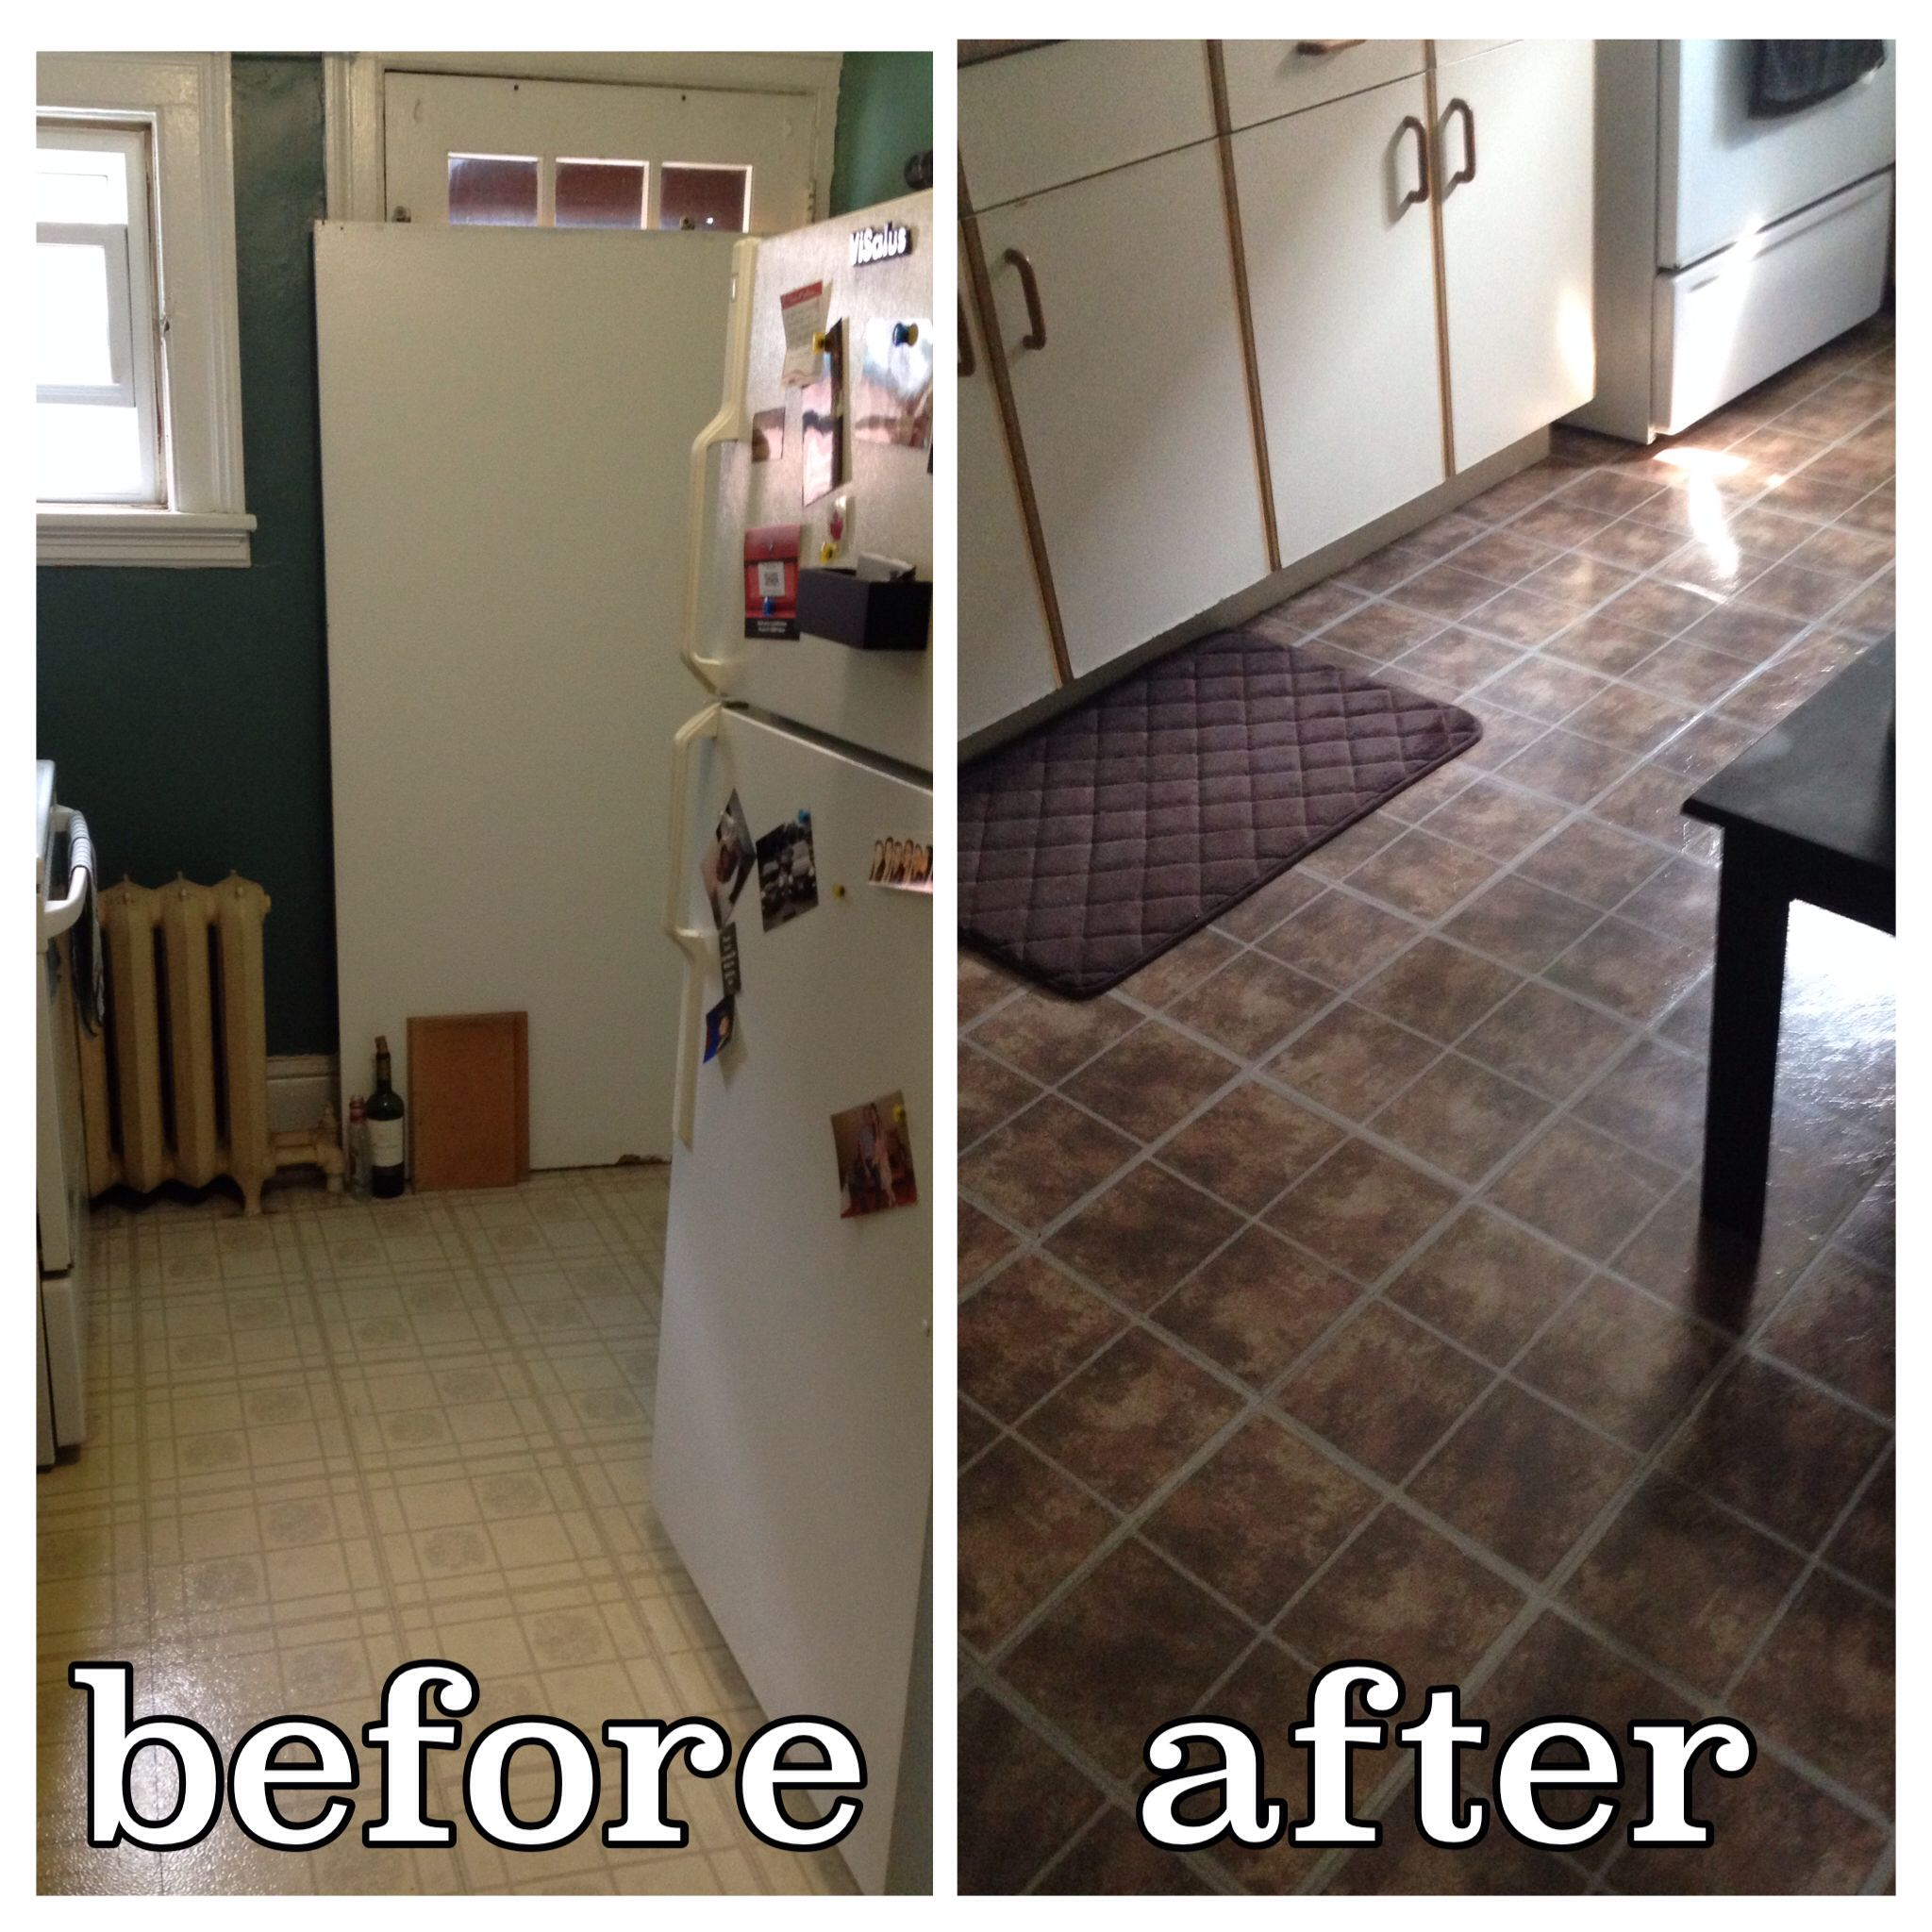 Diy Floors These Are Stick On Tiles From The Dollar Store 30 To A